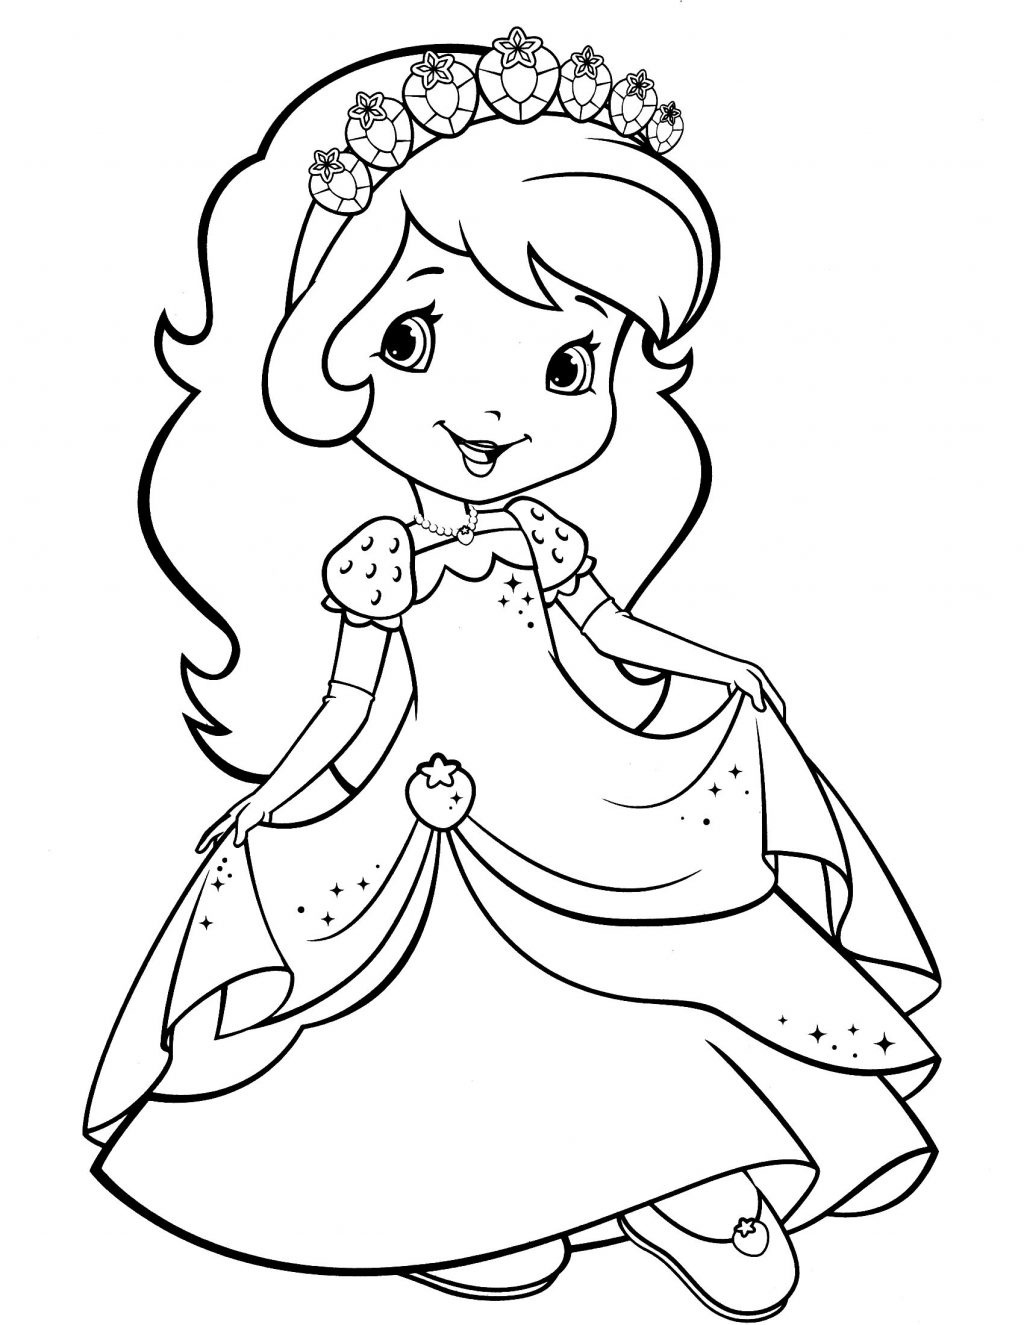 Strawberry Shortcake Coloring Pages Coloring Pages Strawberry - Strawberry Shortcake Coloring Pages Free Printable